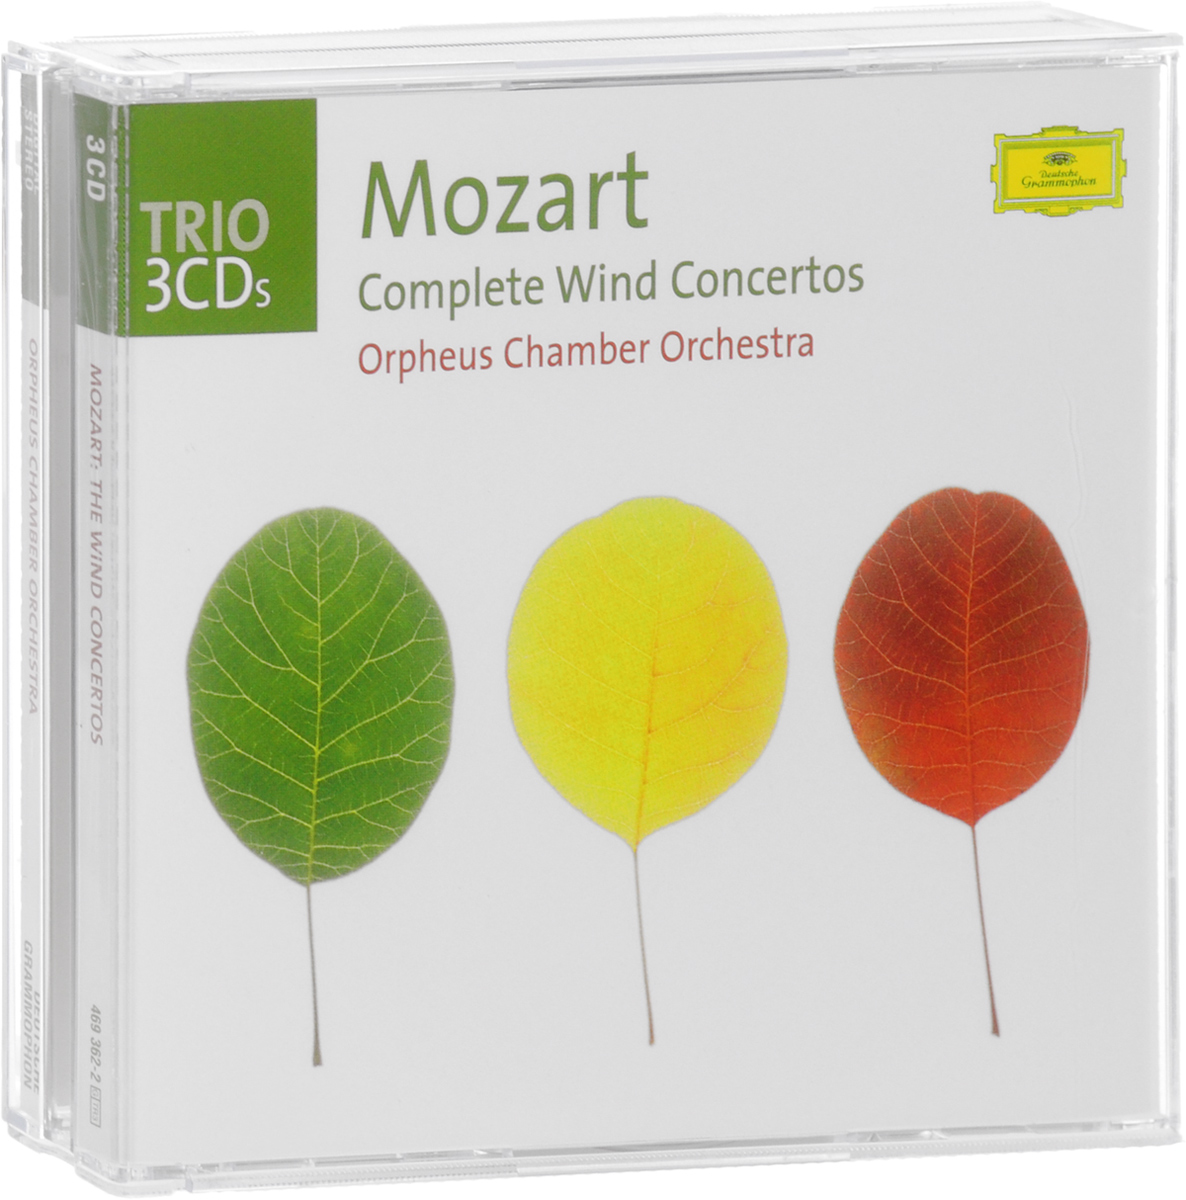 Orpheus Chamber Orchestra Orpheus Chamber Orchestra. Mozart. The Wind Concertos (3 CD) саймон престон тревор пиннок the english concert orchestra simon preston trevor pinnock handel complete organ concertos 3 cd